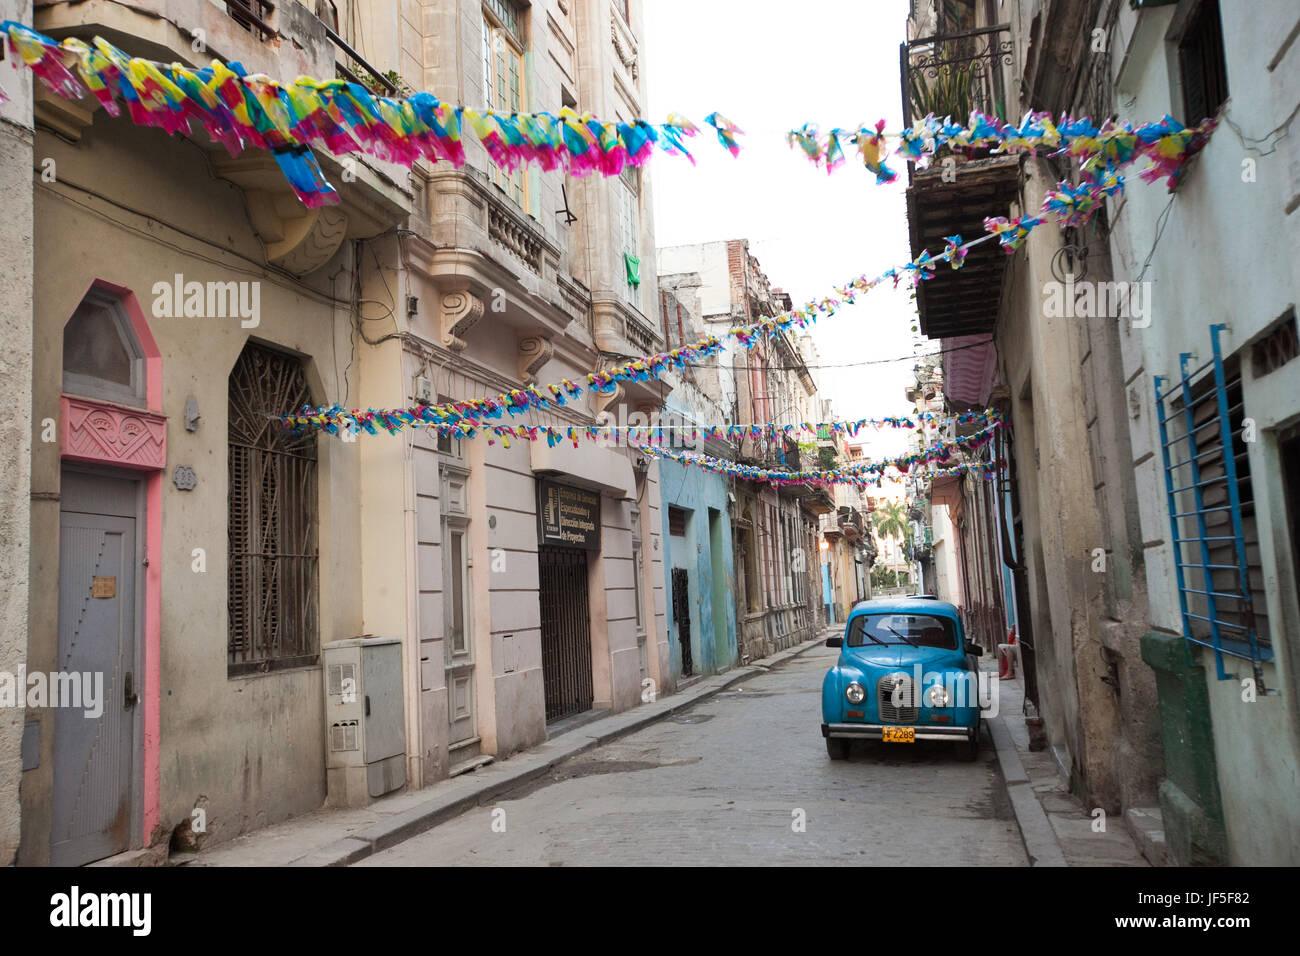 Above a classic American car, colorful decorations hang from buildings on a narrow street in downtown Havana. - Stock Image